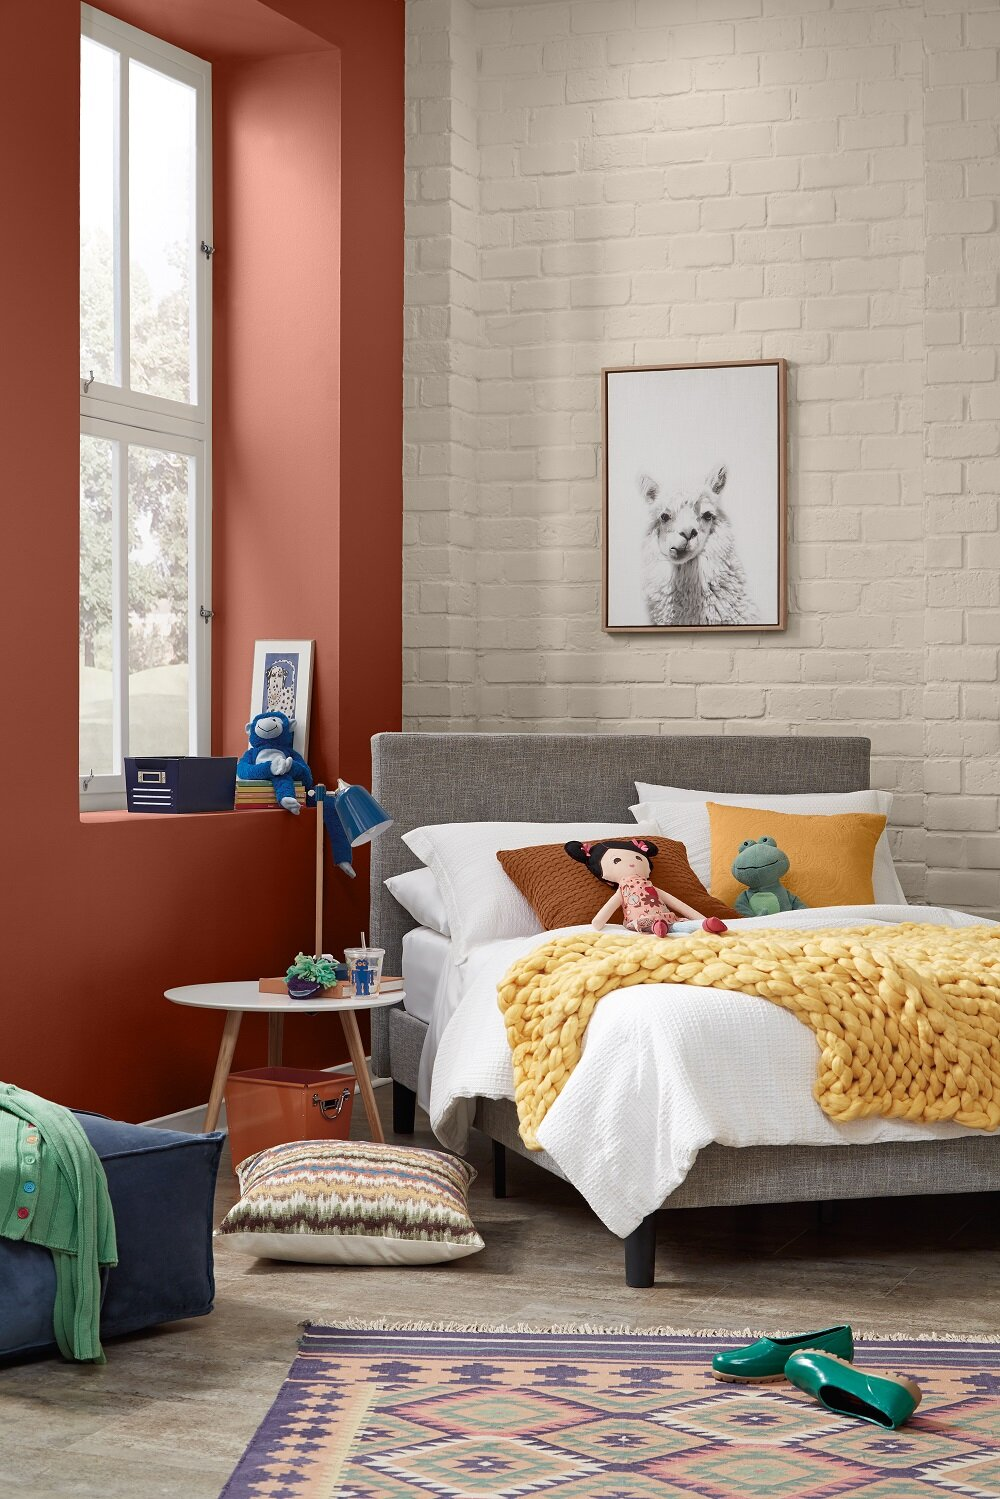 The Color Trends 2021: Behr 'Optimistic View' Palette - The Nordroom